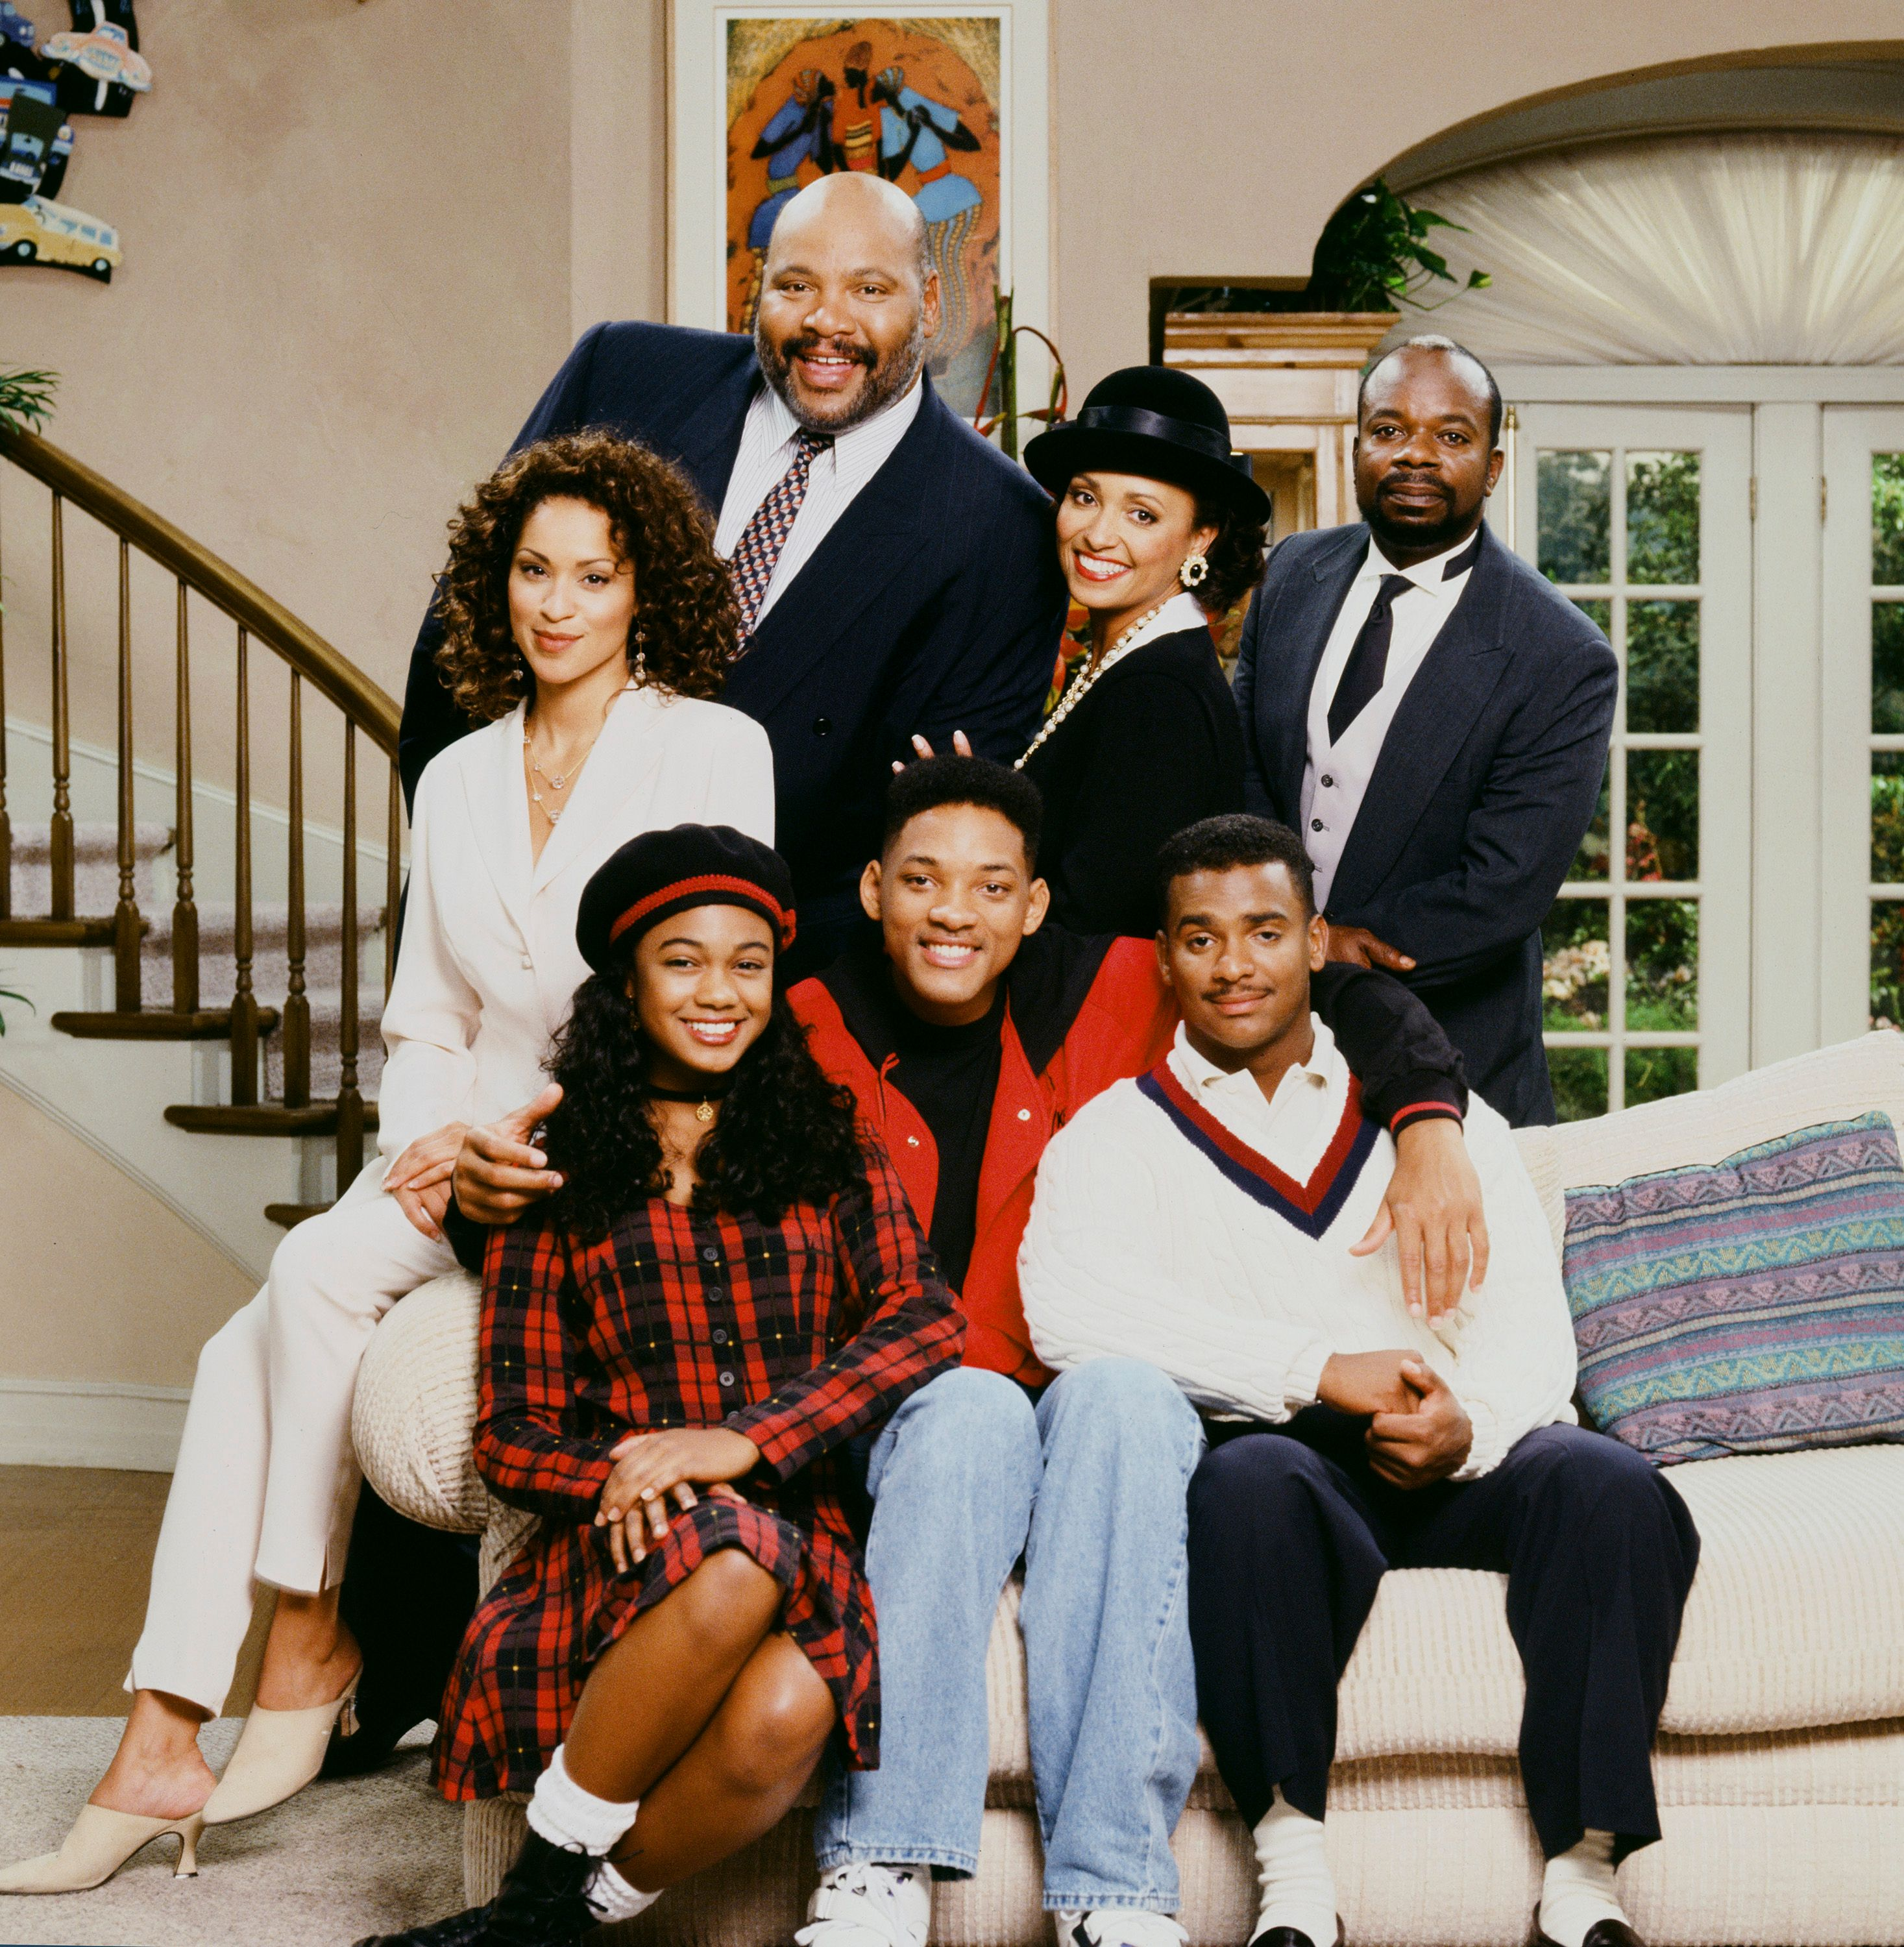 """""""The Fresh Prince of Bel-Air"""" cast: Karyn Parsons as Hilary Banks, James Avery as Philip Banks, Daphne Reid as Vivian Banks, Joseph Marcell as Geoffrey; Front: Tatyana Ali as Ashley Banks, Will Smith as William 'Will' Smith, Alfonso Ribeiro as Carlton Banks 